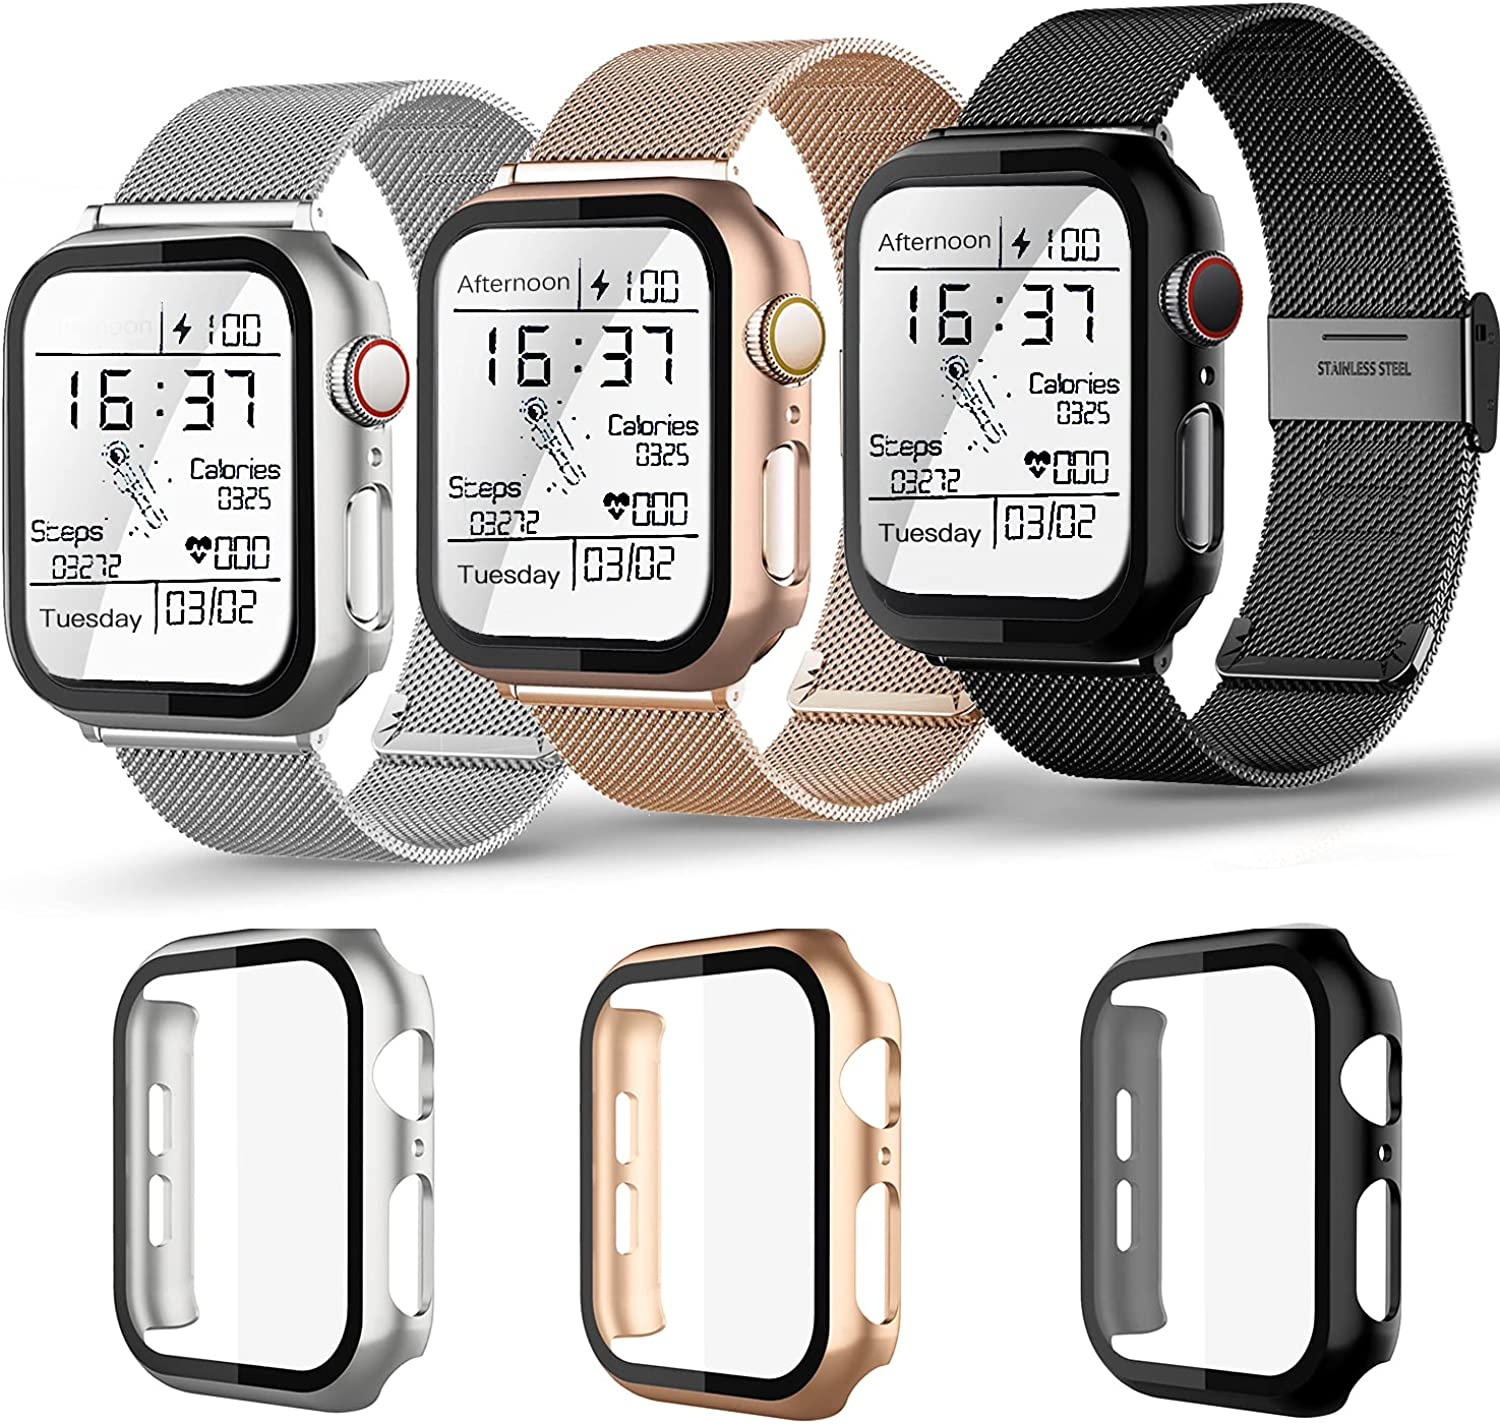 Magnetic iwatch Band with Screen Protector case Compatible for Apple Watch Bands 38mm 40mm 42mm 44mm ,3 pack milan Stainless Steel Mesh Replacement Bands and Case Built in Tempered Glass Screen Protector For Iwatch Series 6/5/4/3/2/SE